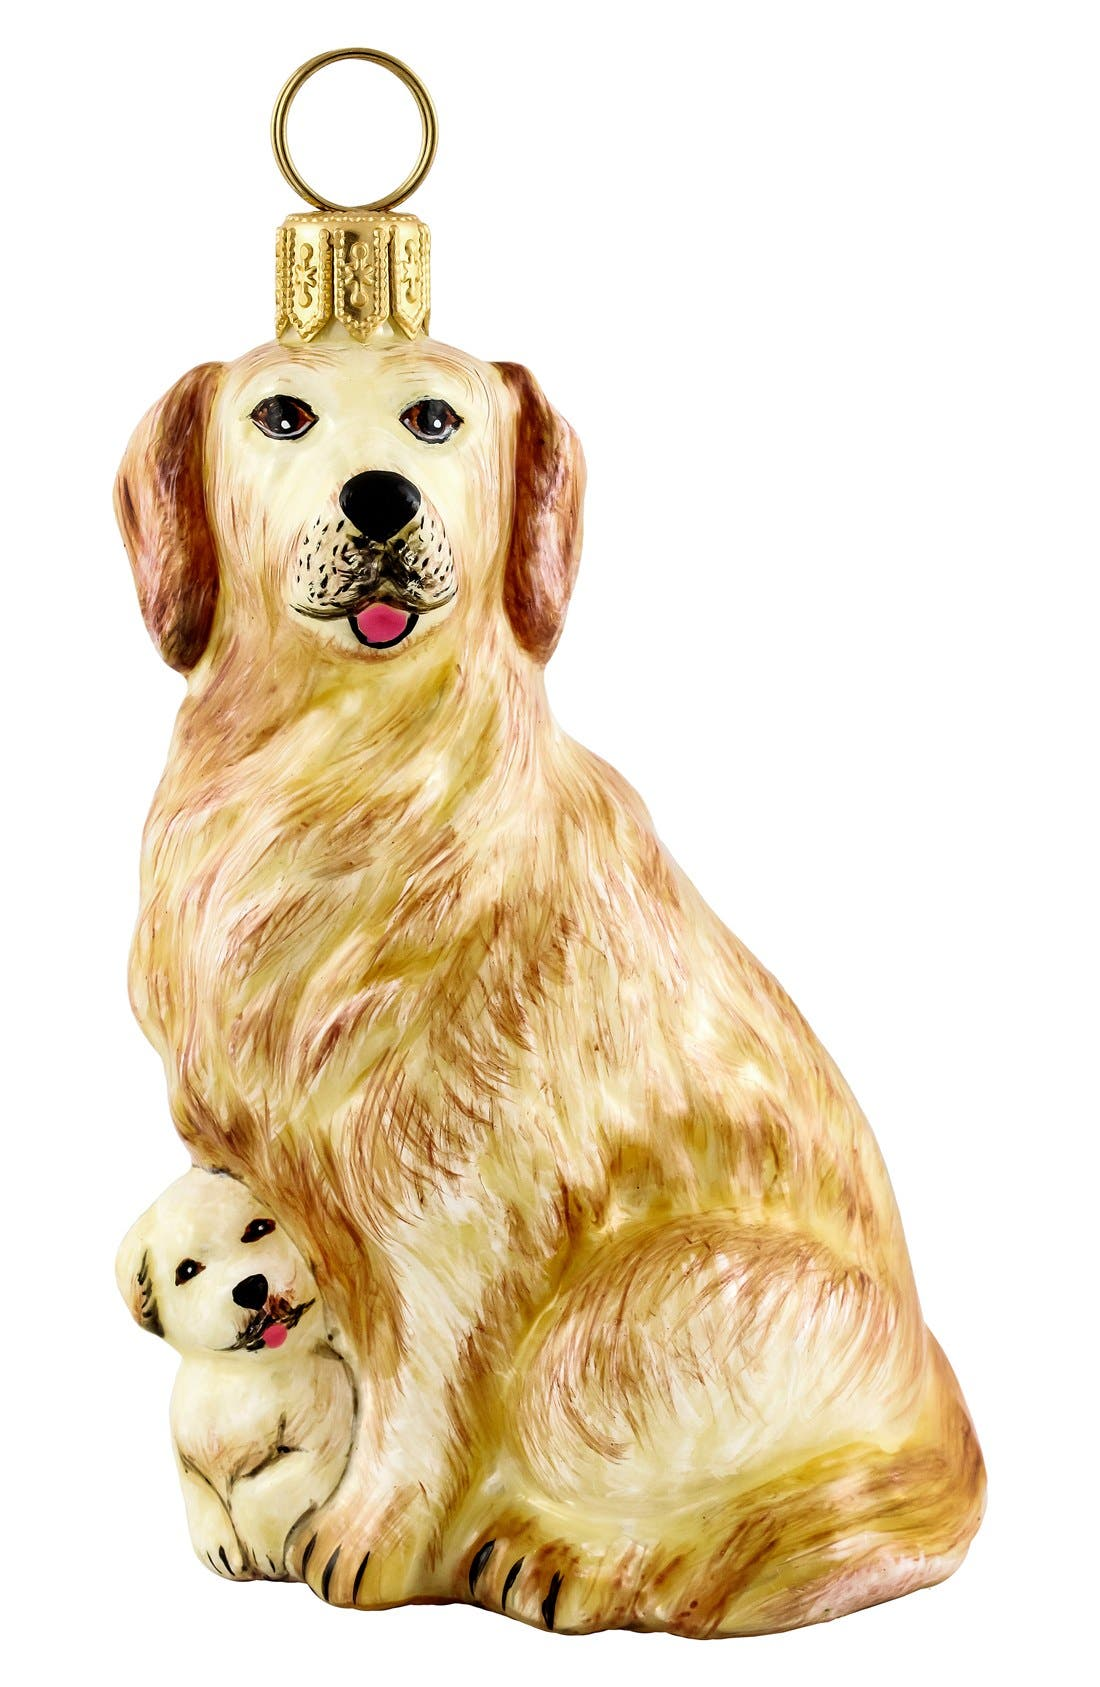 'Mother with Puppy' Ornament,                         Main,                         color, Golden Retriever